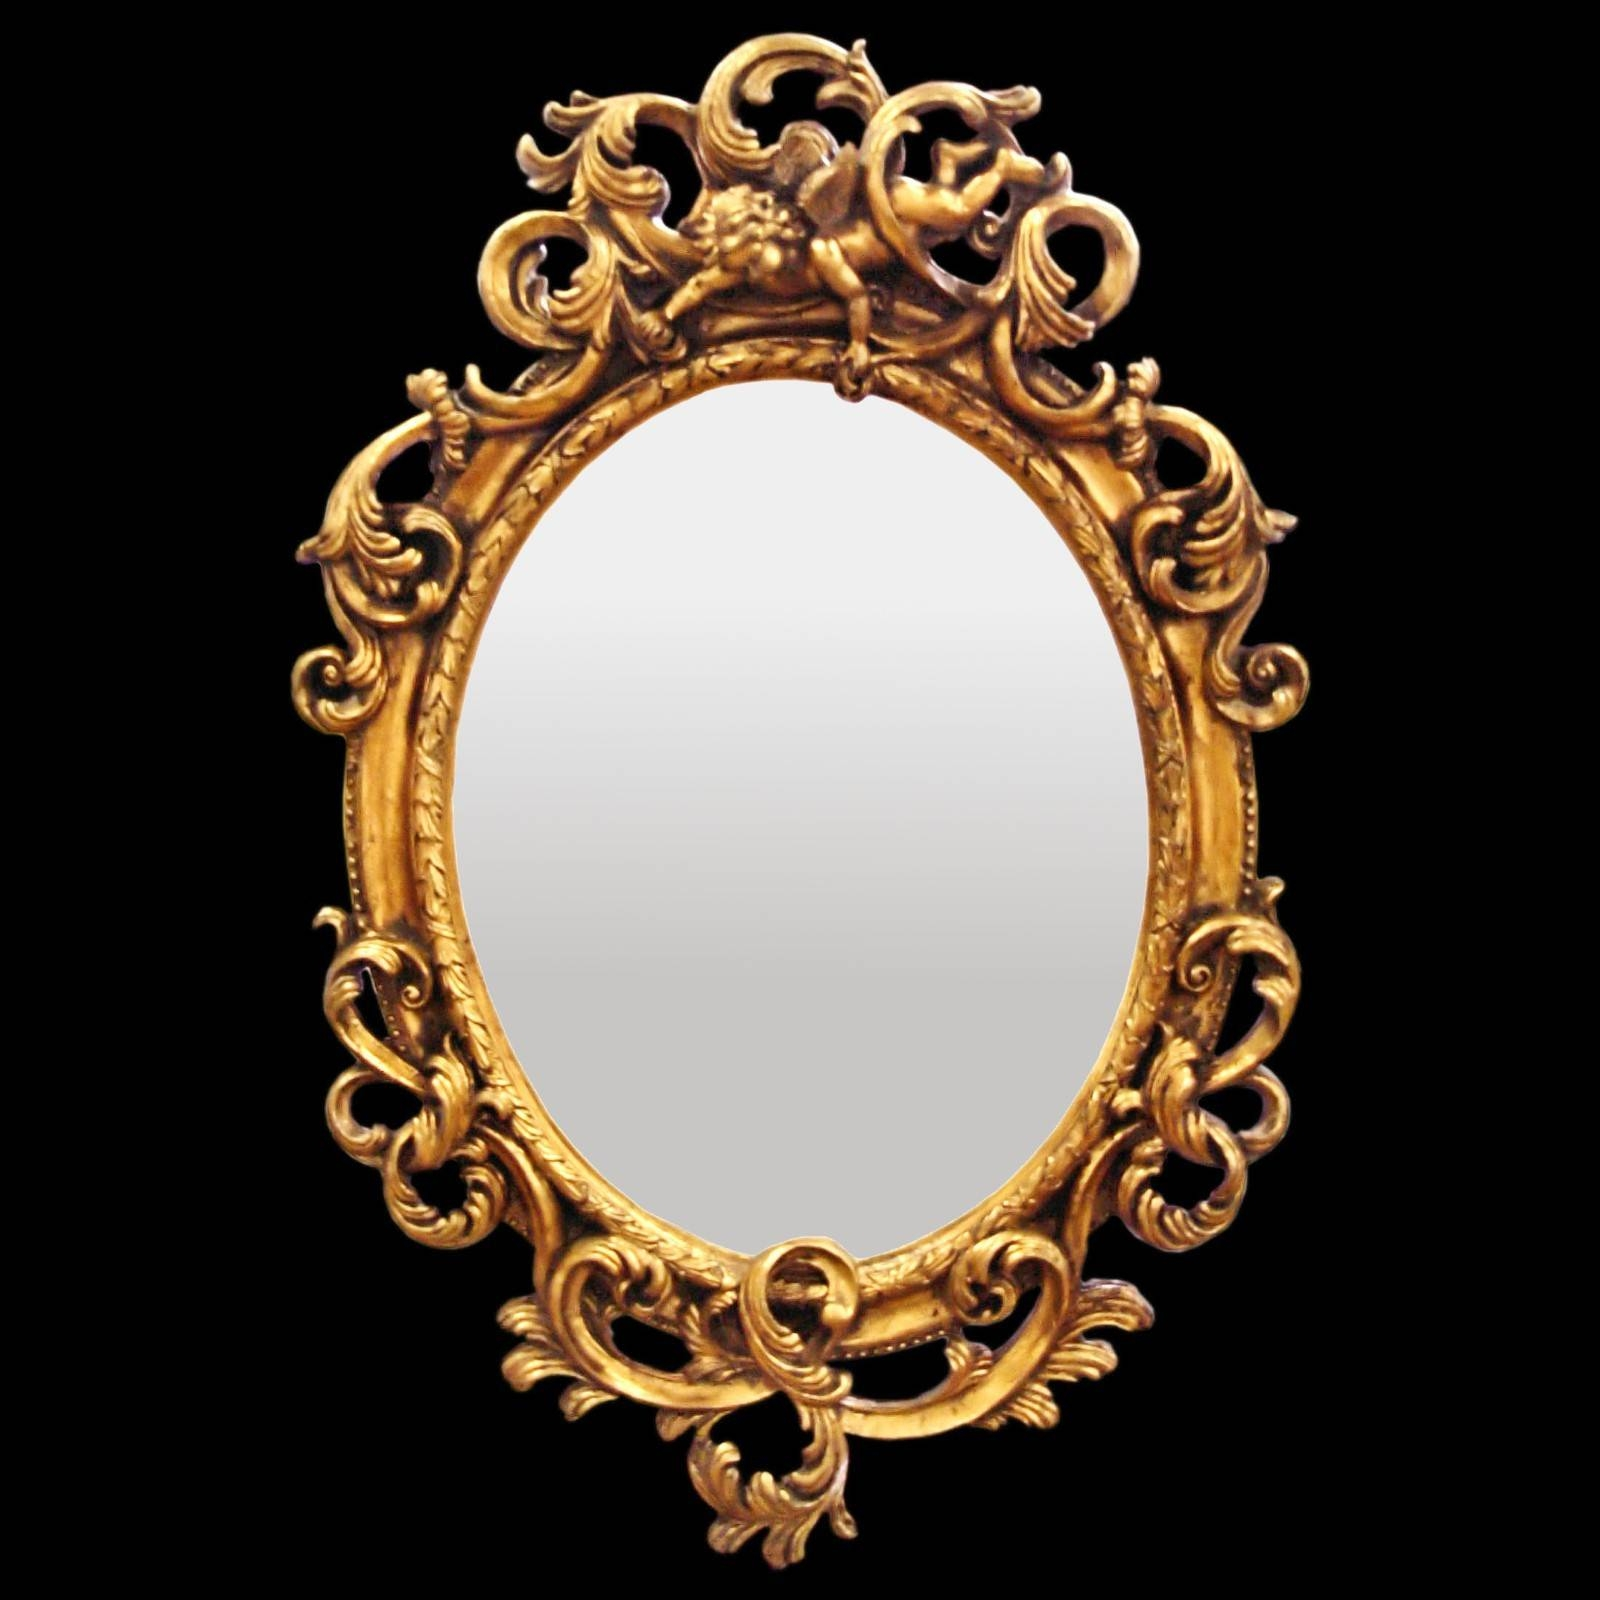 Bathroom Mirror Oval Wall Mirror Baroque De Luxe Gold Acanthus for Baroque Gold Mirrors (Image 6 of 15)